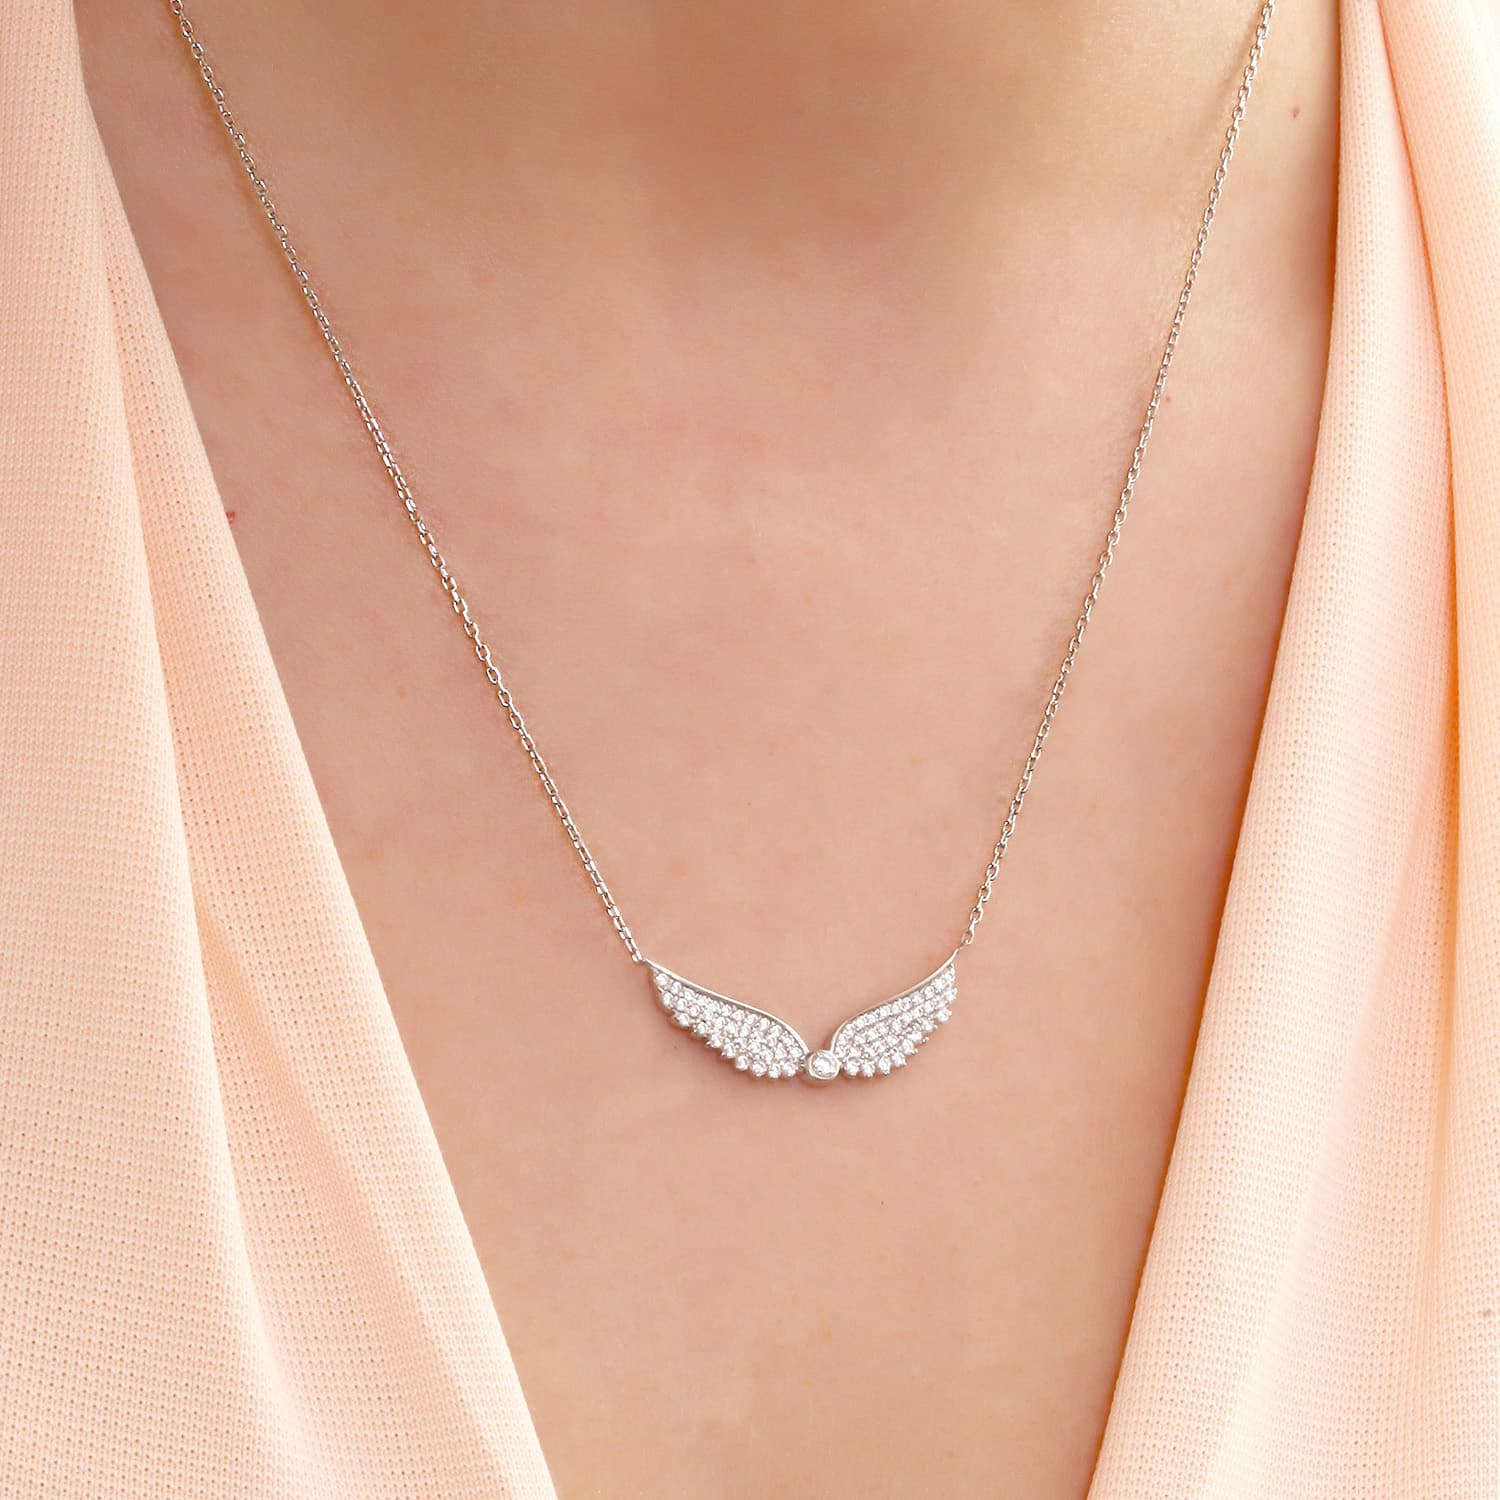 Stone Wing Necklace